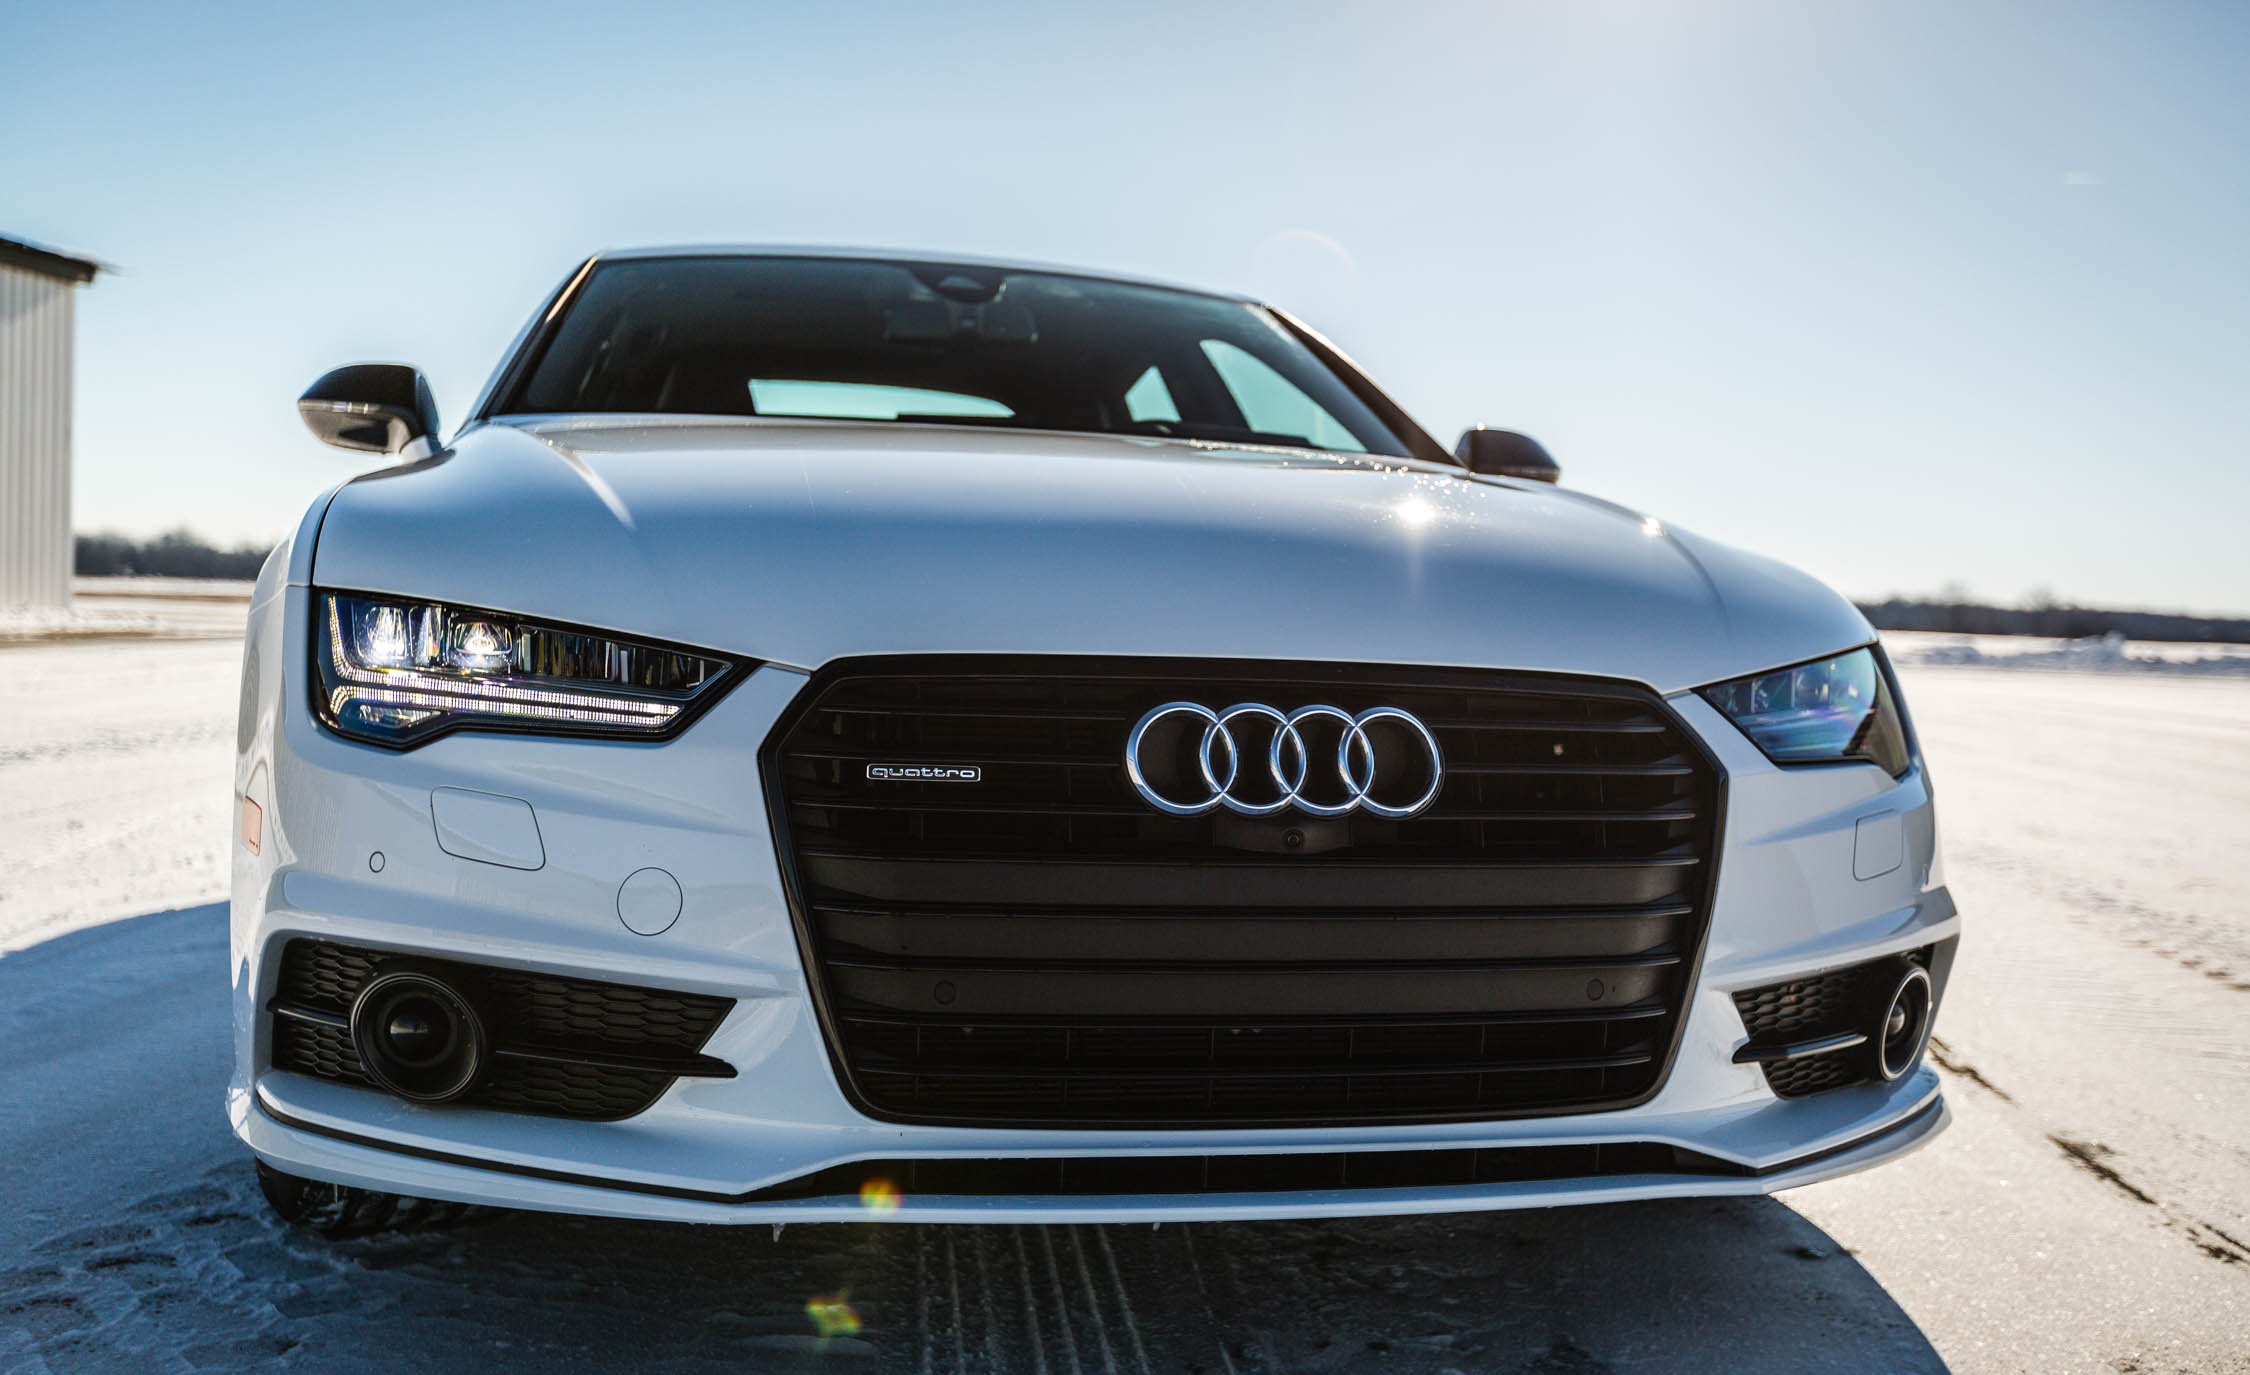 2017 Audi A7 Exterior Front End (Photo 7 of 24)